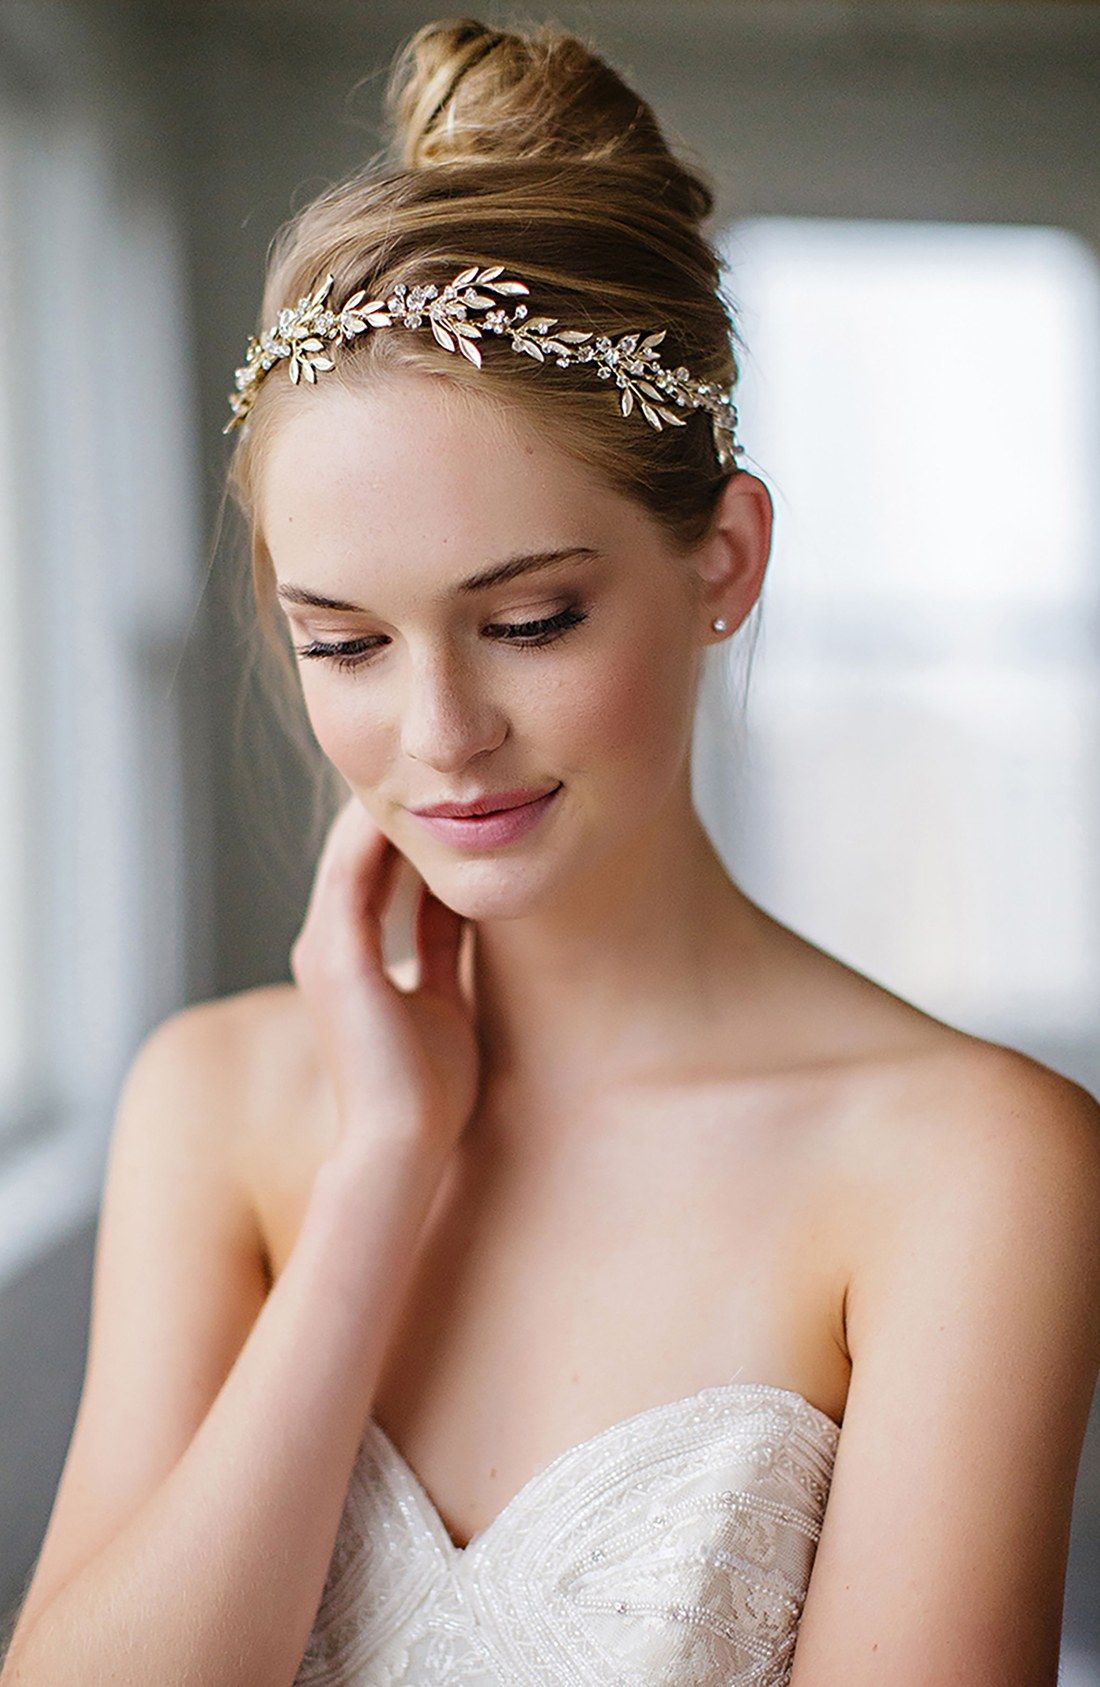 beautiful makeup and updo featuring the 'avalon' leaf halo & sash by